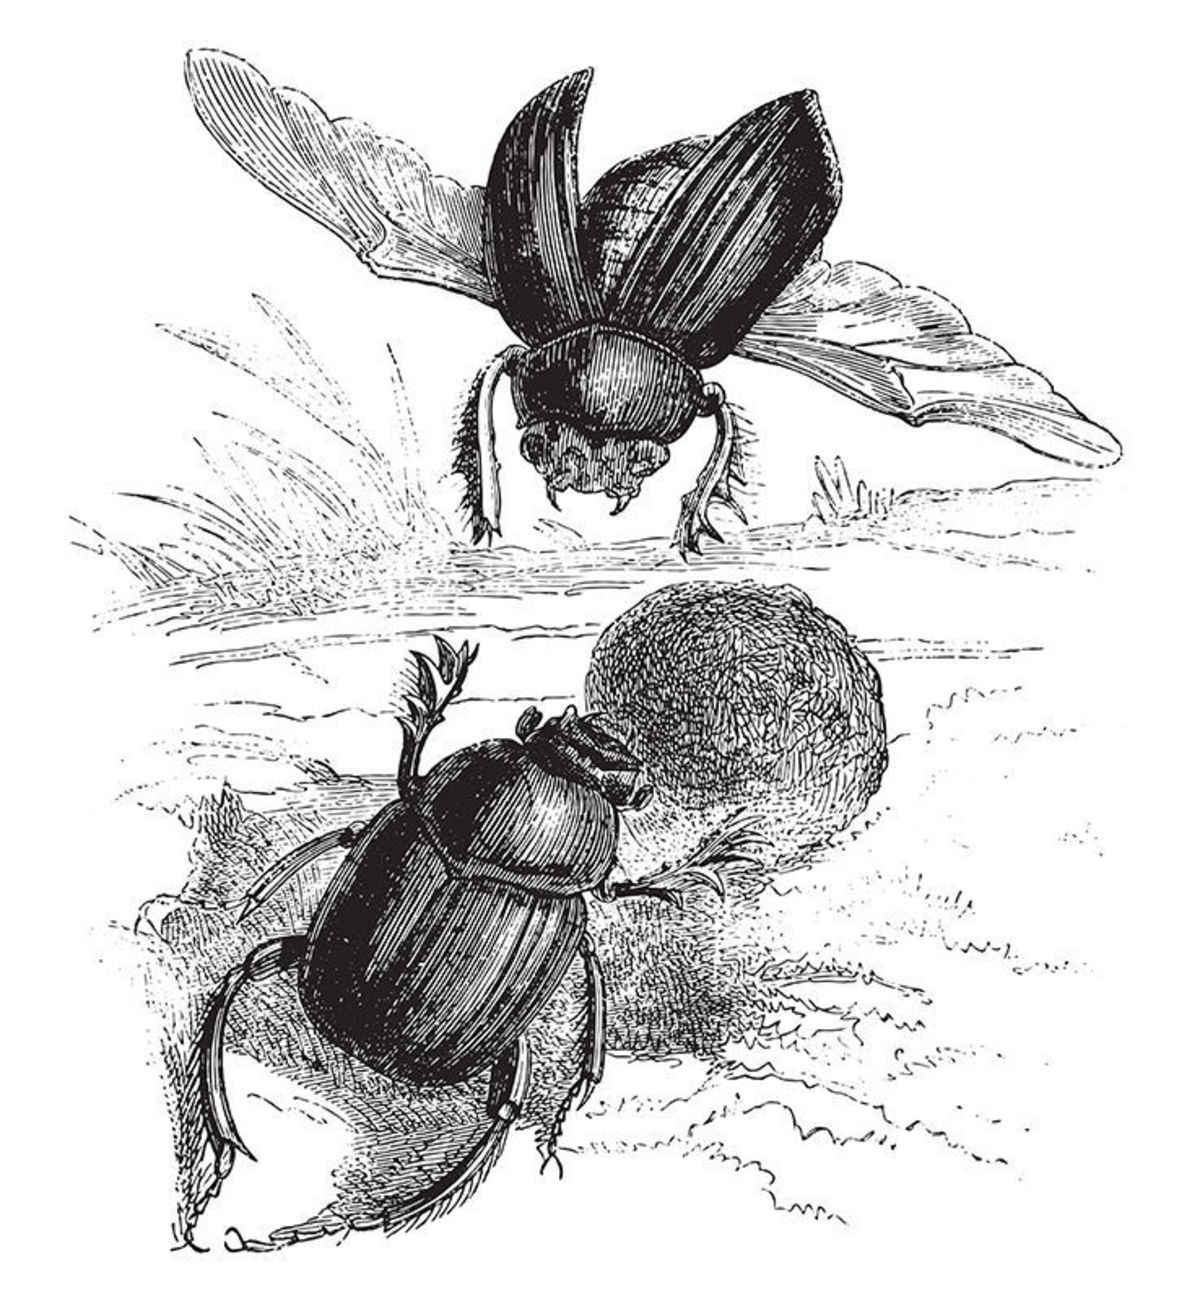 The Sacred Beetle: Jean-Henri Fabré's 'Book of Insects